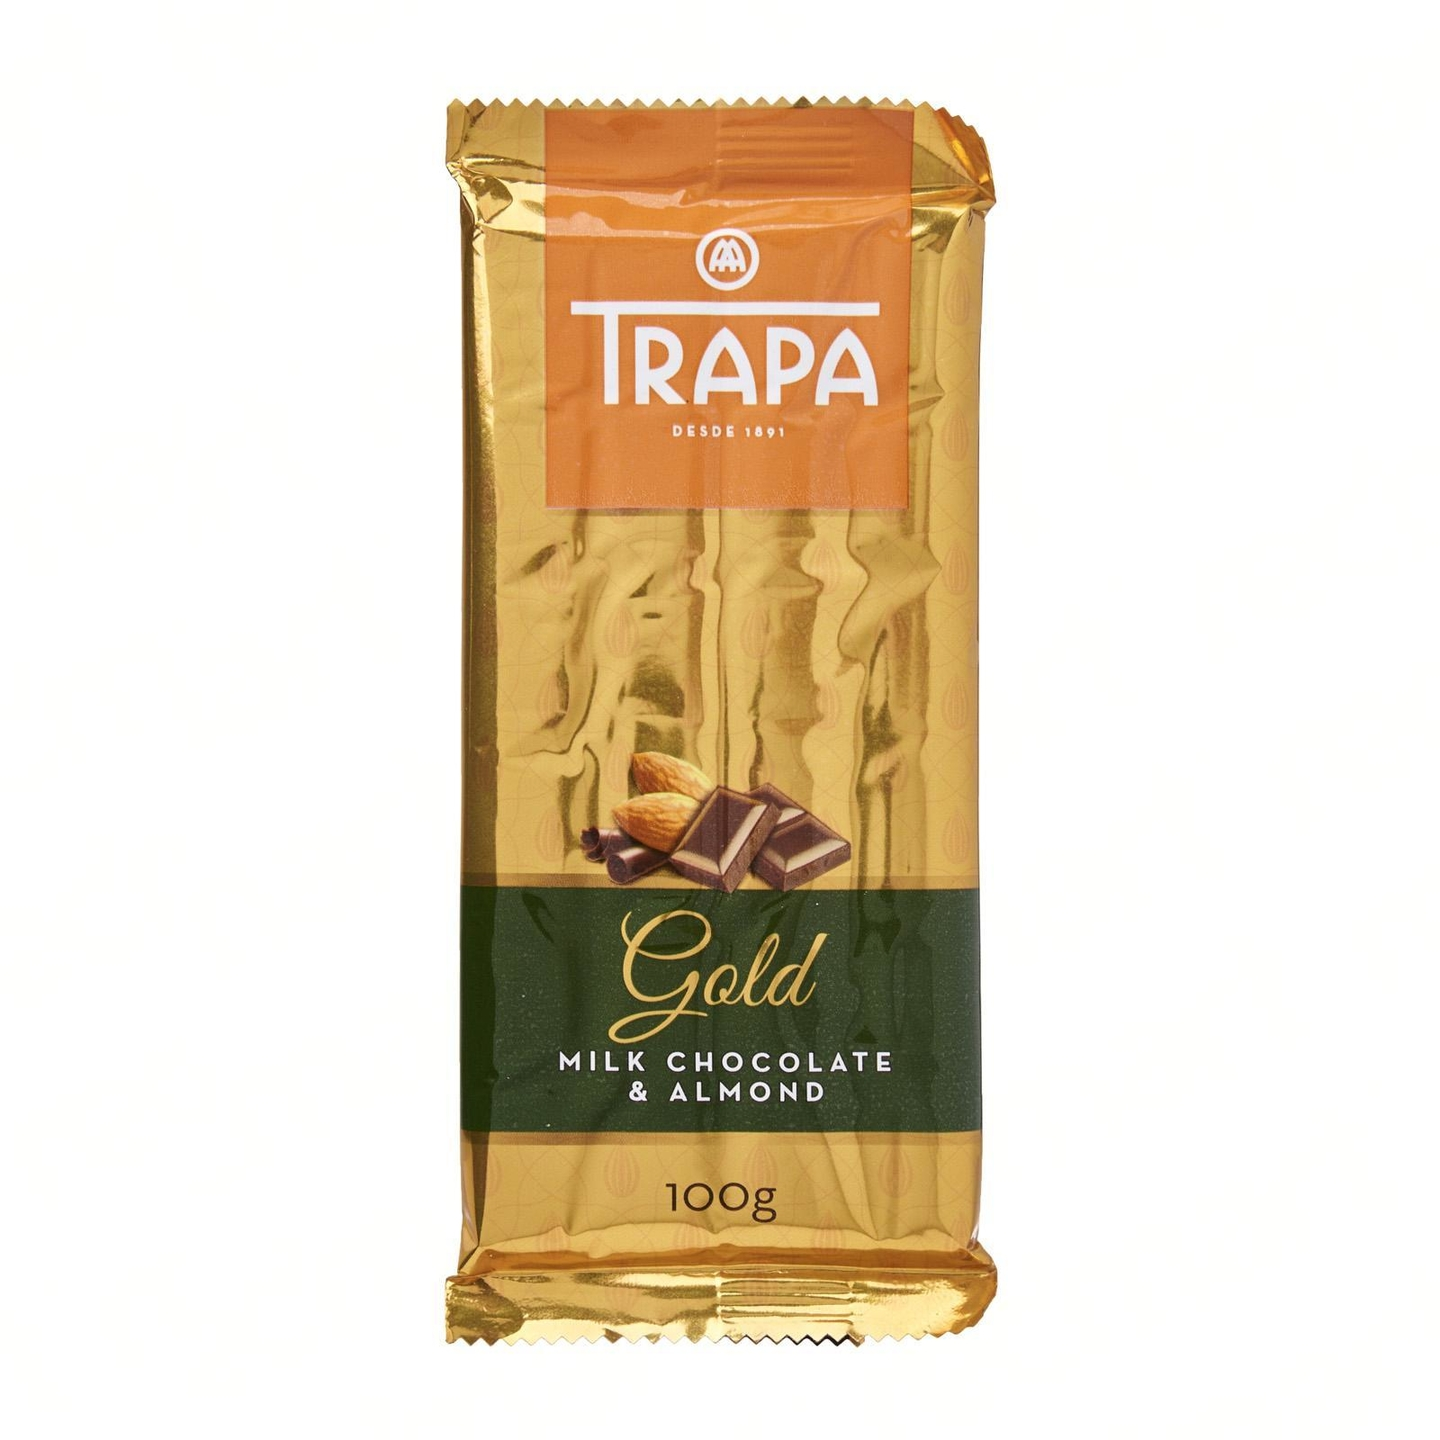 Trapa Gluten Free - Milk Chocolate Bar with Almond